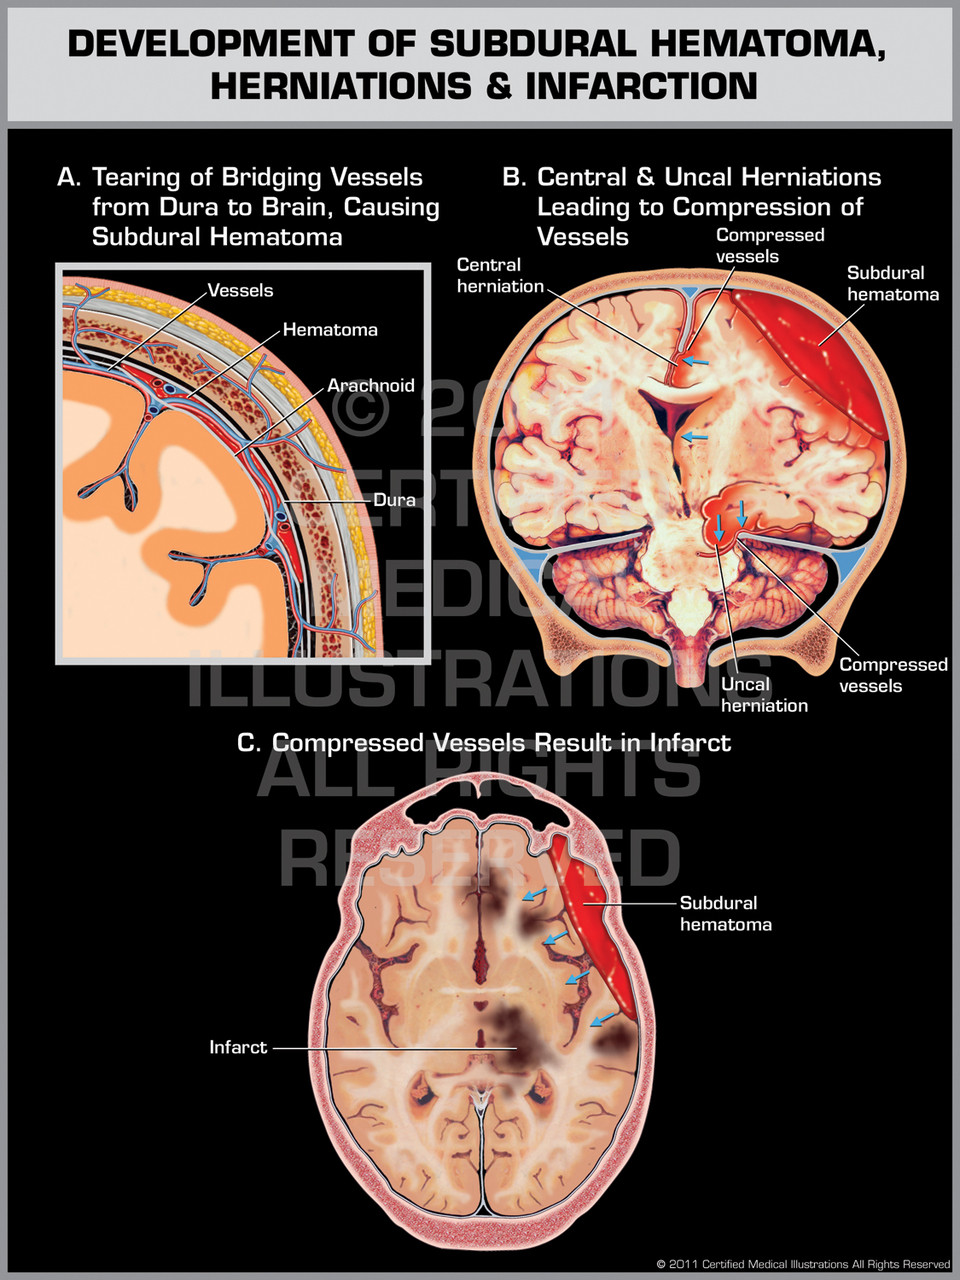 Development of Subdural Hematoma, Herniations & Infarction - Print Quality  Instant Download